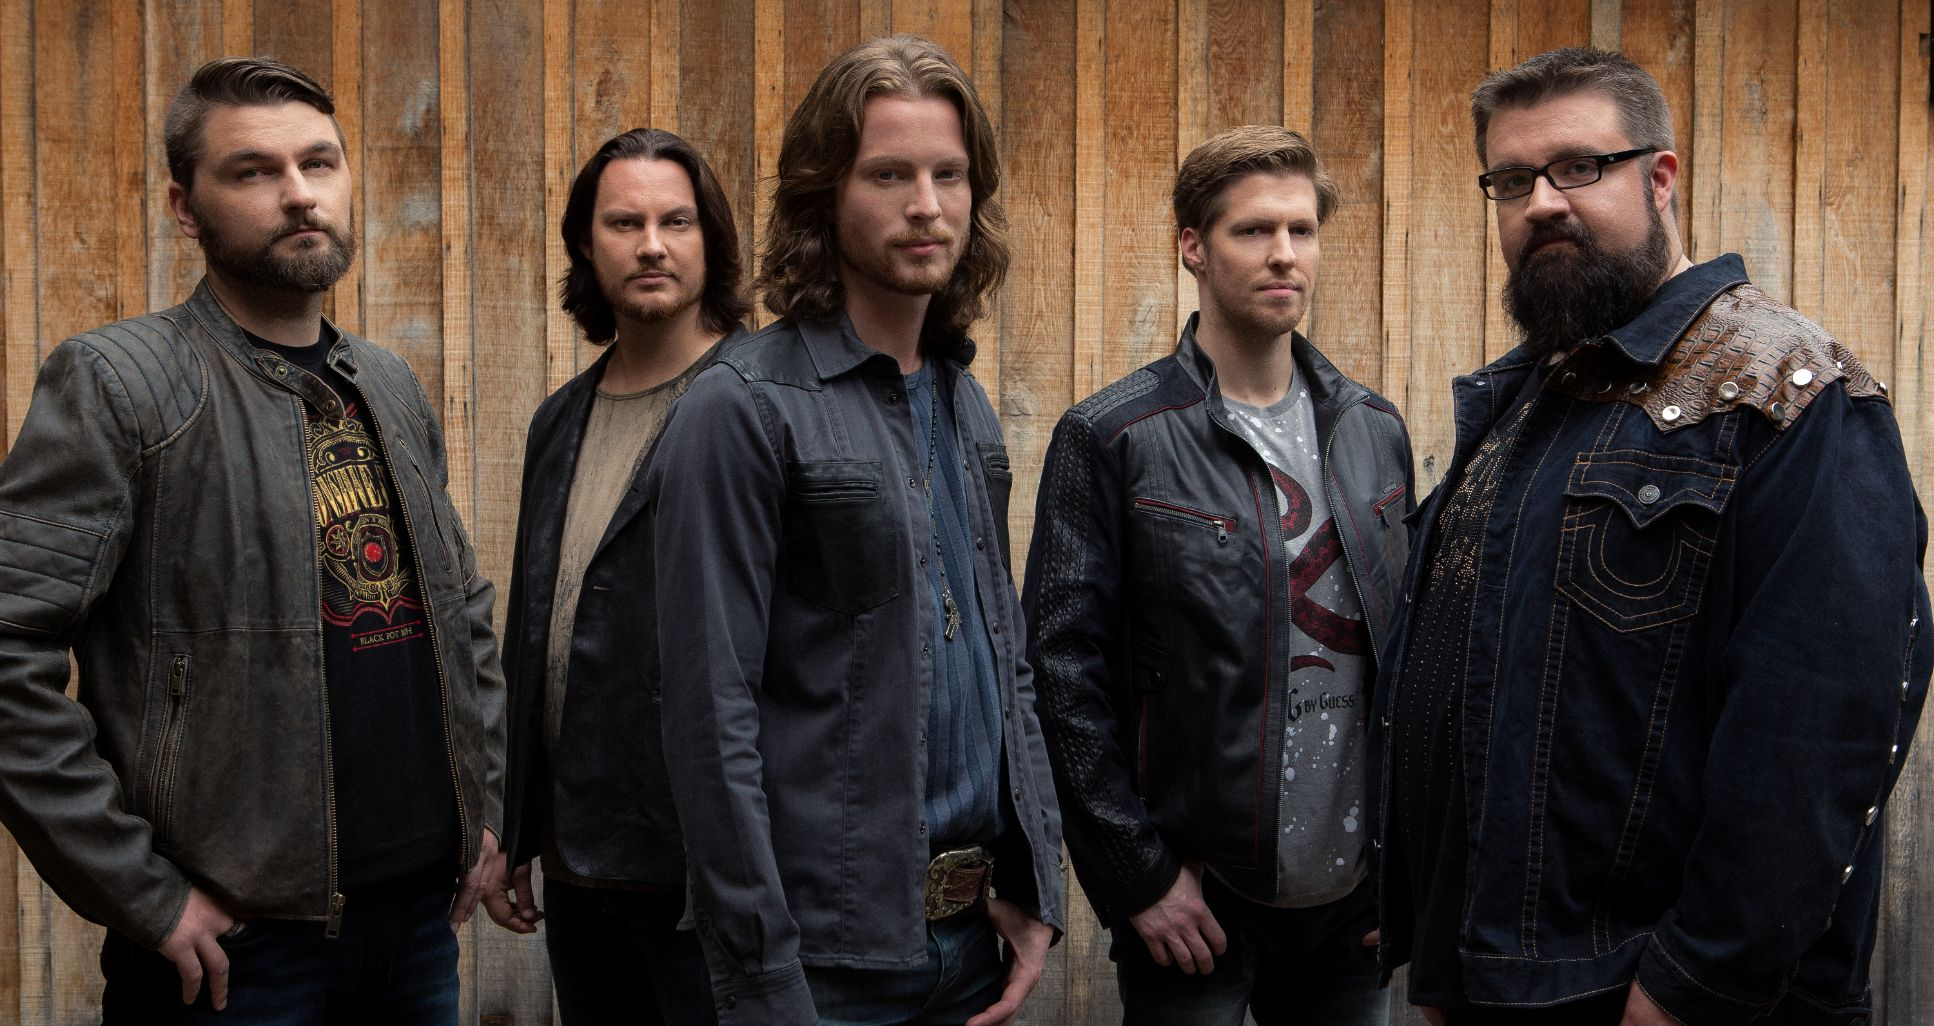 Home Free: A Country Christmas Tour